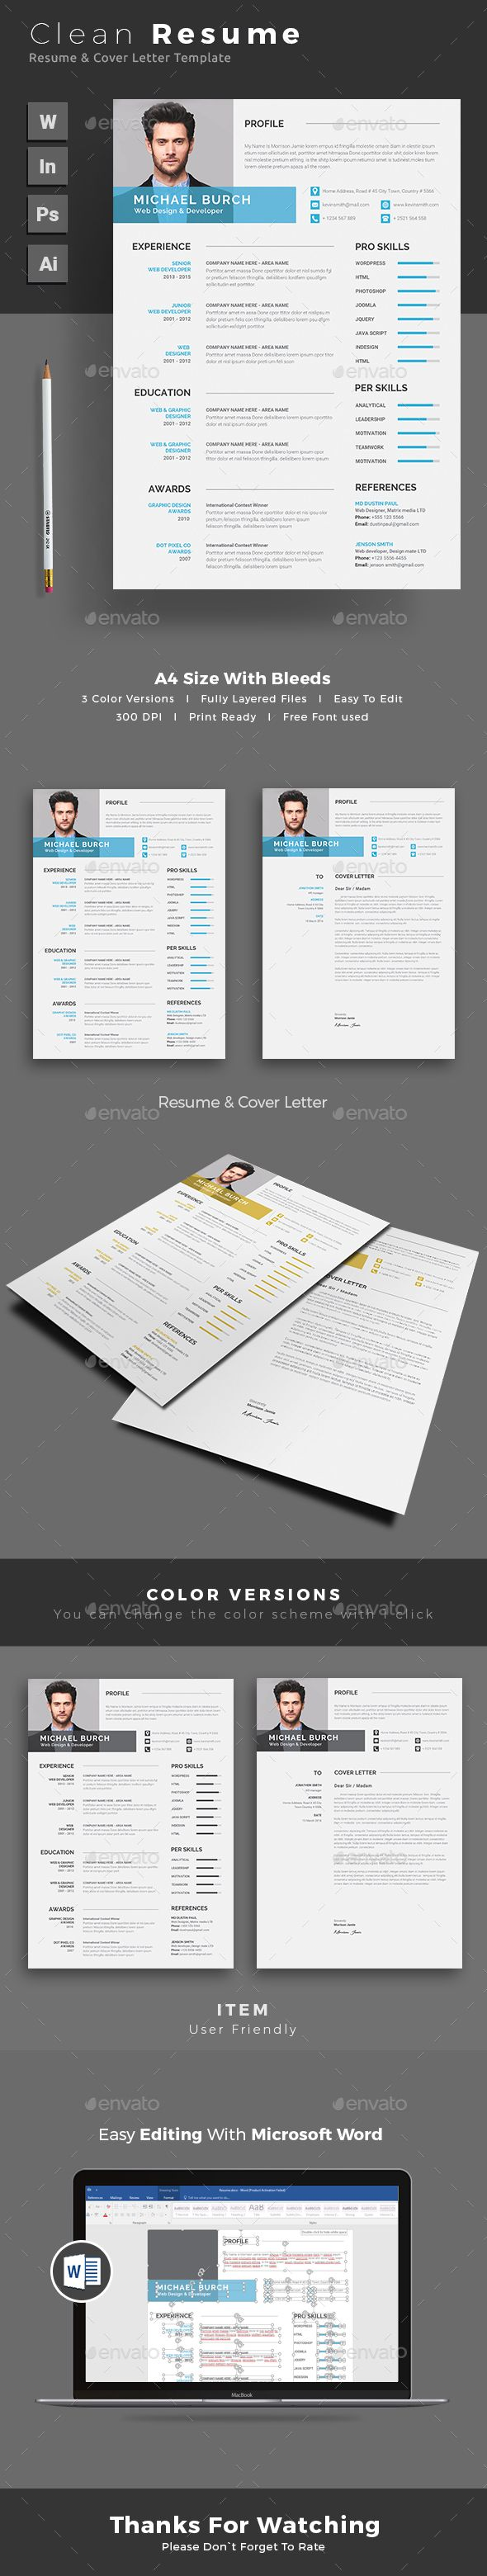 Best Bewerbung Design Images On   Resume Design Resume